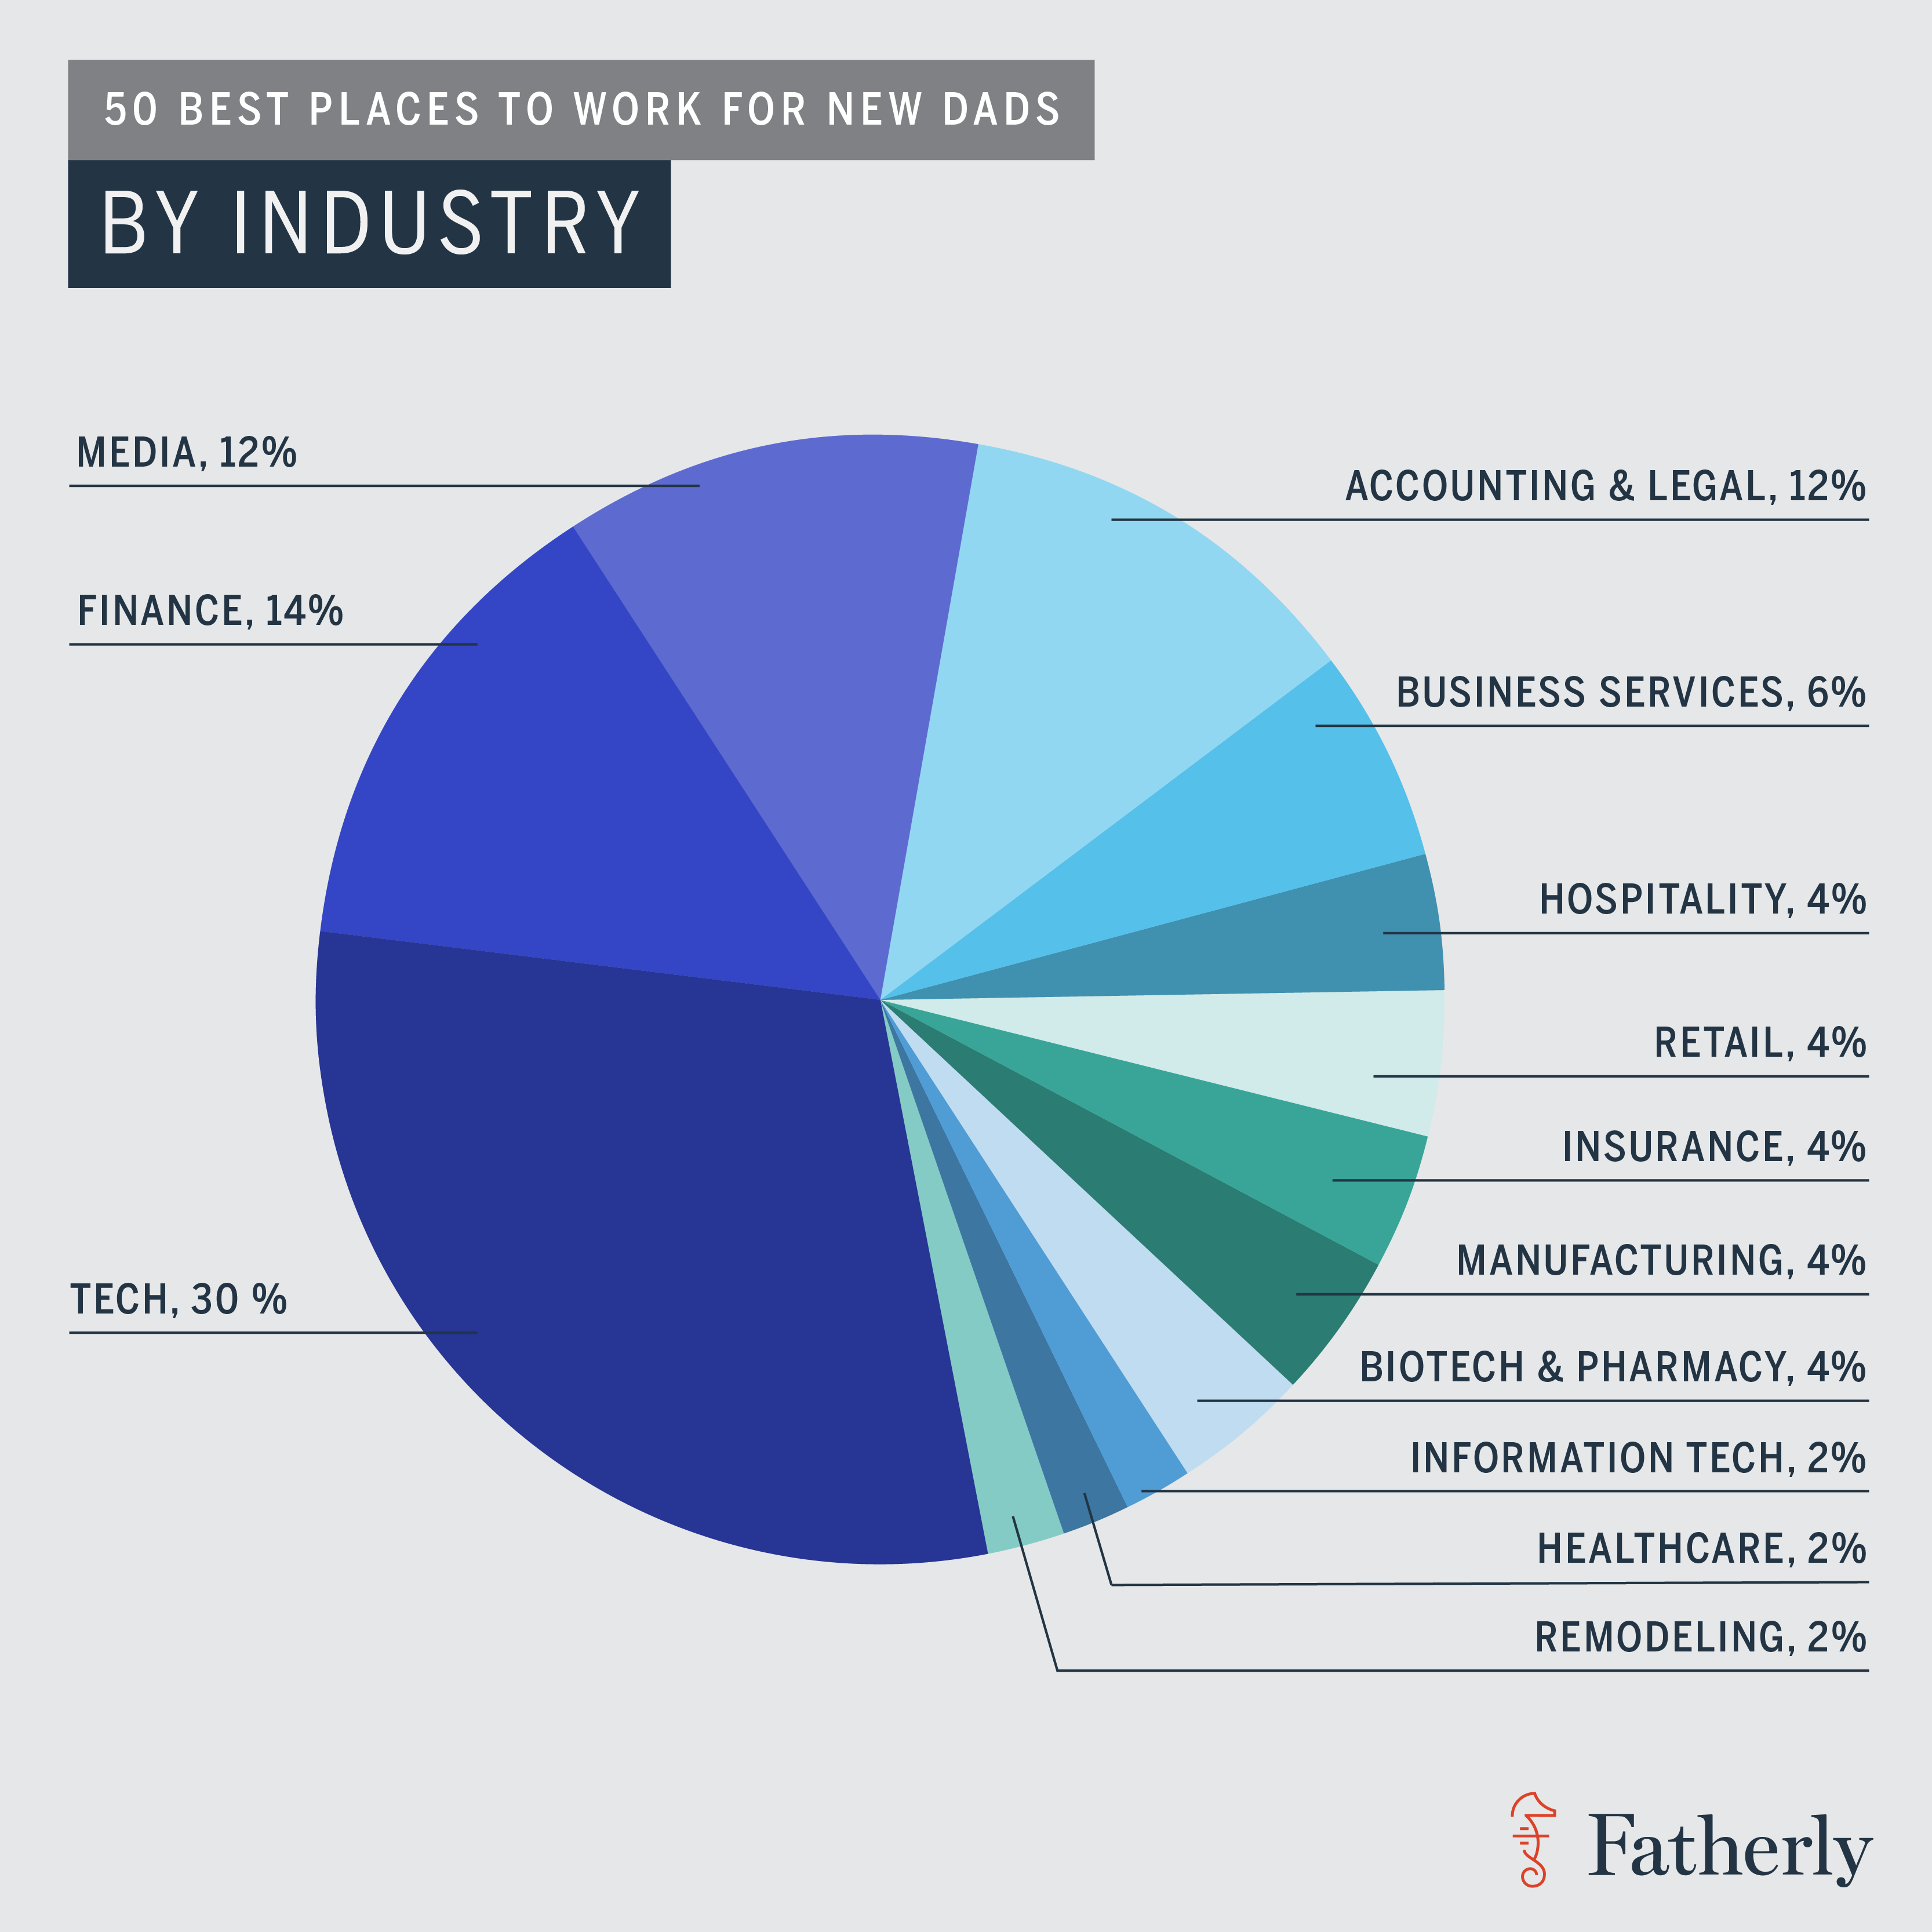 Fatherly_50_Best_By_Industry